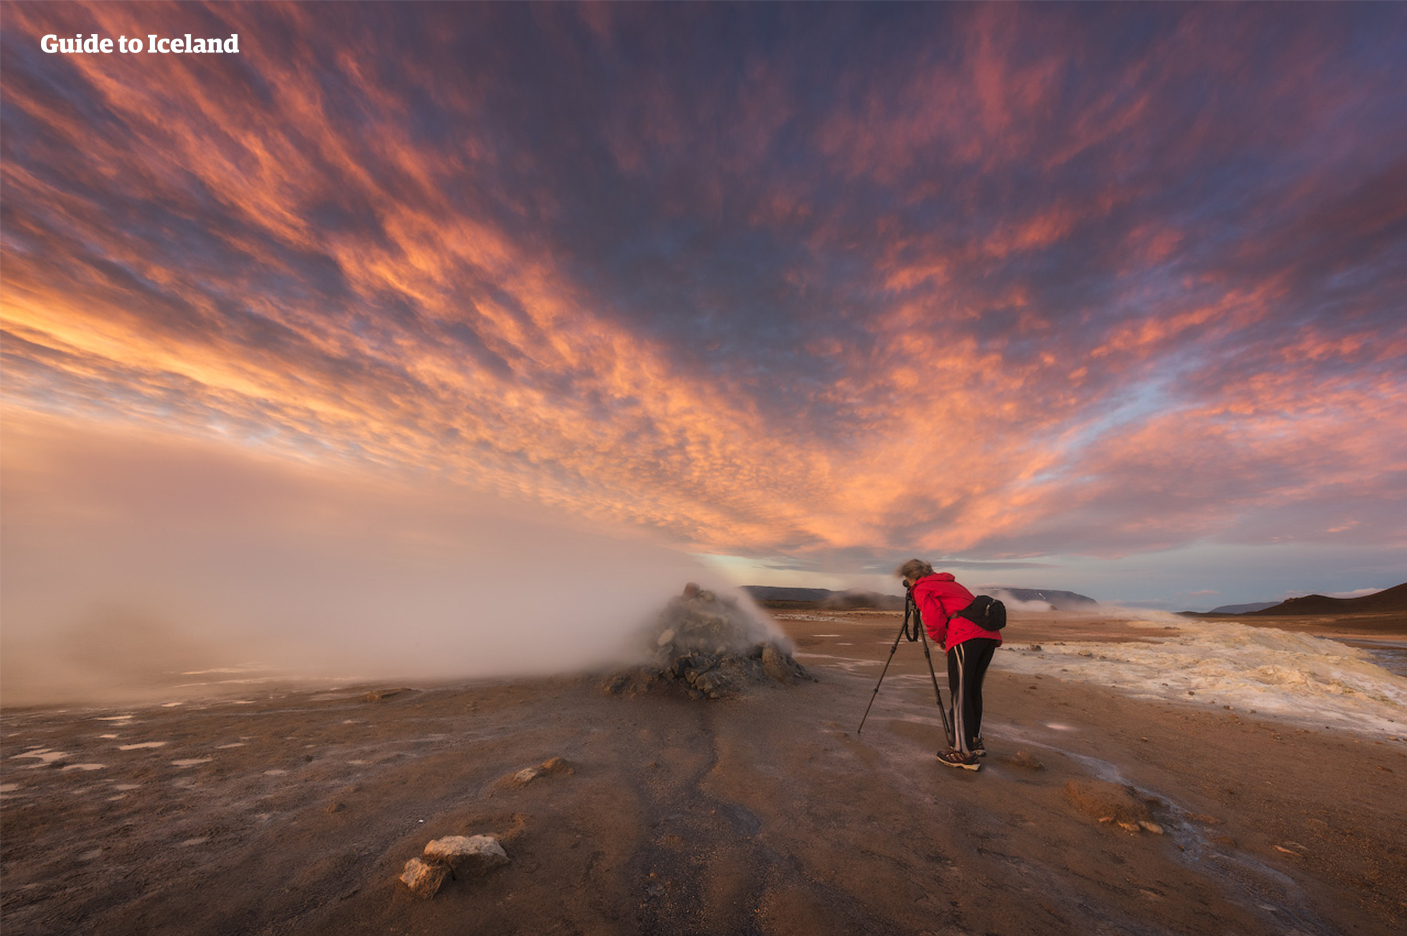 A traveller enjoying the view of a geothermal landscape in the North of Iceland.